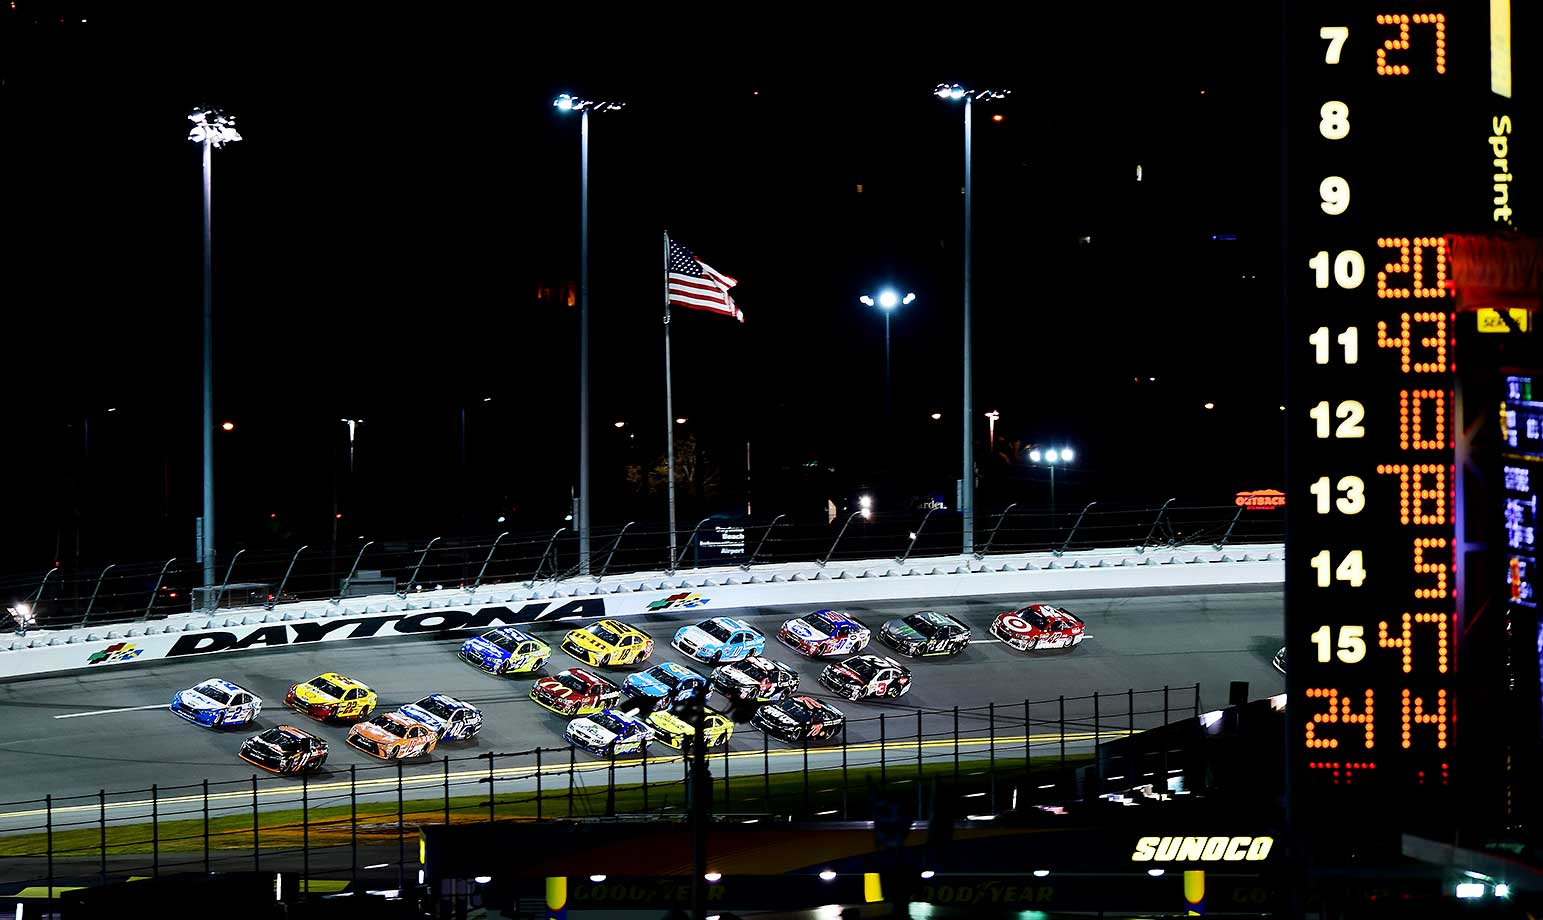 DBrad Keselowski and Denny Hamlin lead a pack of cars during the NASCAR Sprint Cup Series Sprint Unlimited at Daytona.